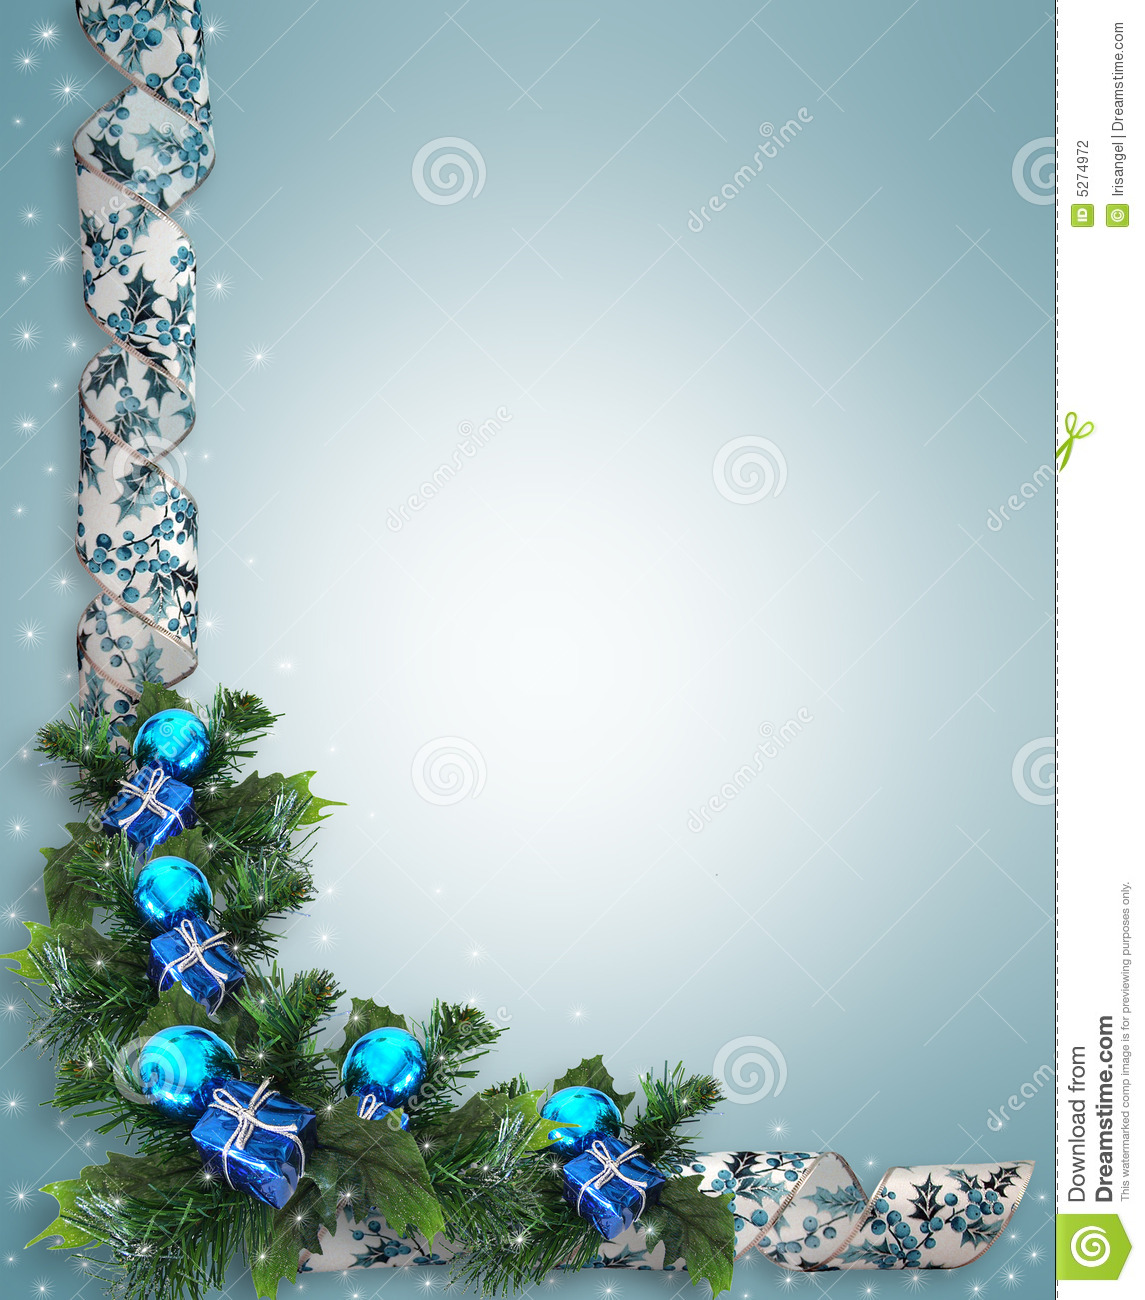 ... Christmas or Hanukkah card or background with blue and white ribbons